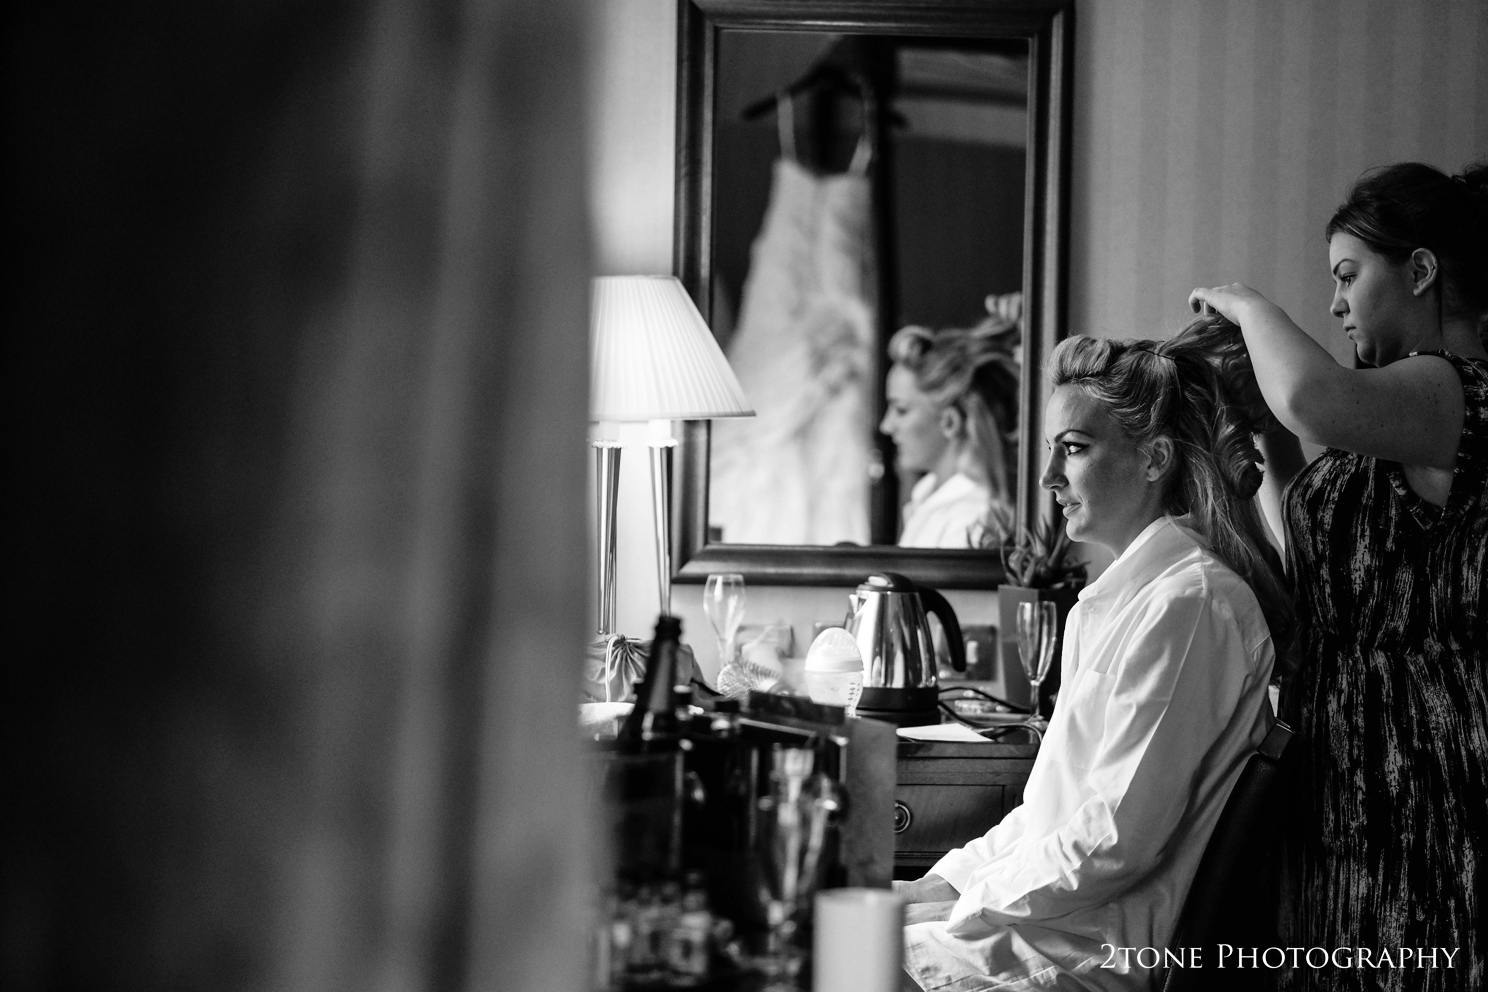 Sarah prepares for the wedding day ahead with her gorgeous Ian Stewart wedding gown hanging on the bed in the reflection of the mirror.